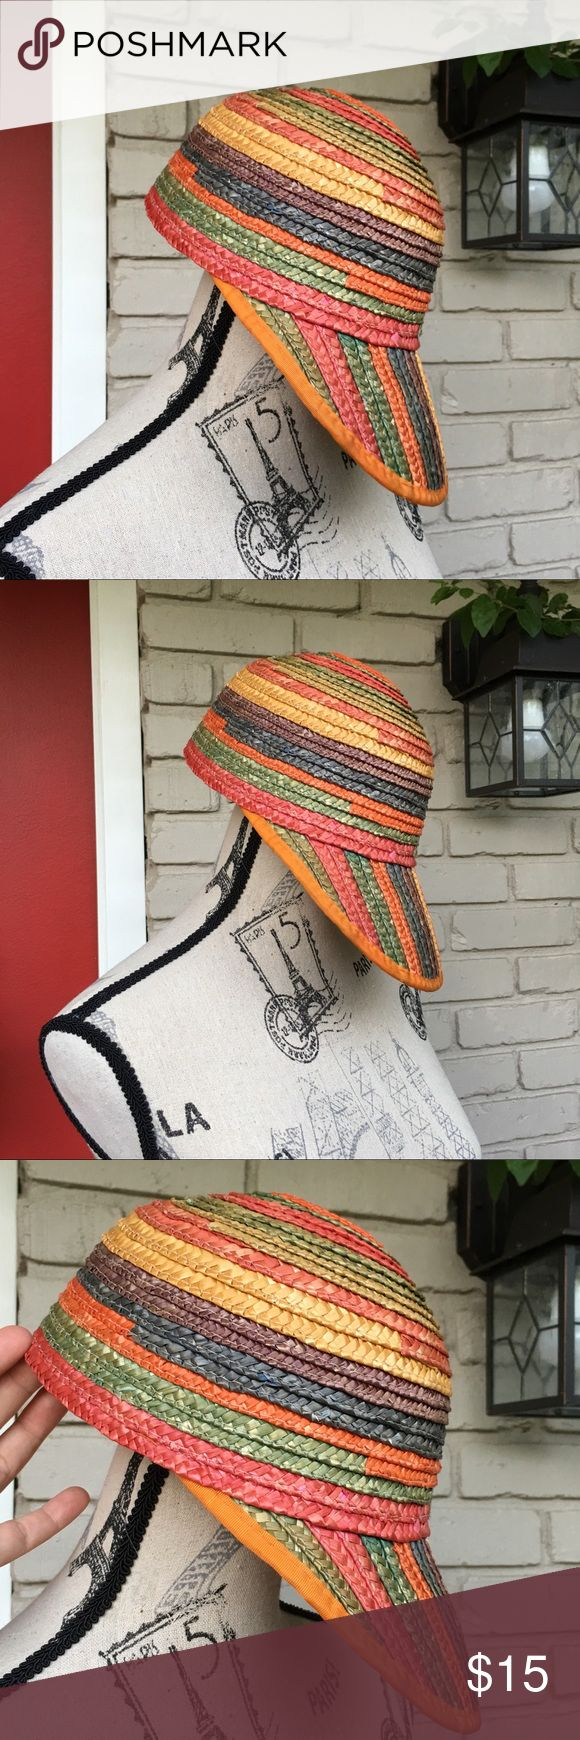 Vintage rainbow straw visor hat Rainbow woven straw visor hat. Torn area on bottom back but still super cute and functional. Vintage Accessories Hats